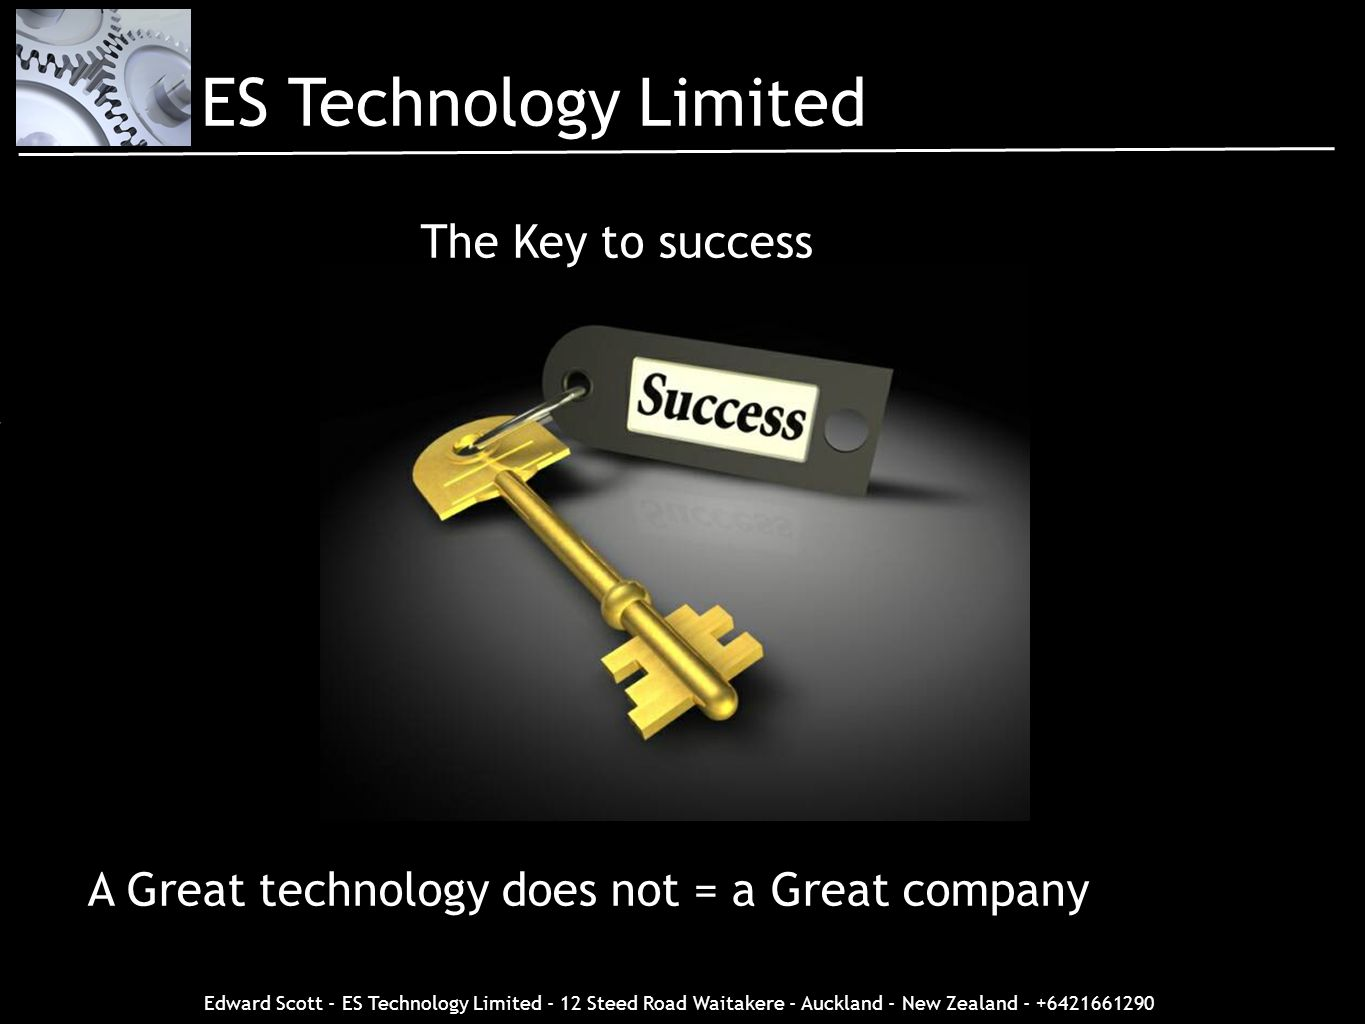 Edward Scott - ES Technology Limited - 12 Steed Road Waitakere - Auckland - New Zealand - +6421661290 The Key to success A Great technology does not =